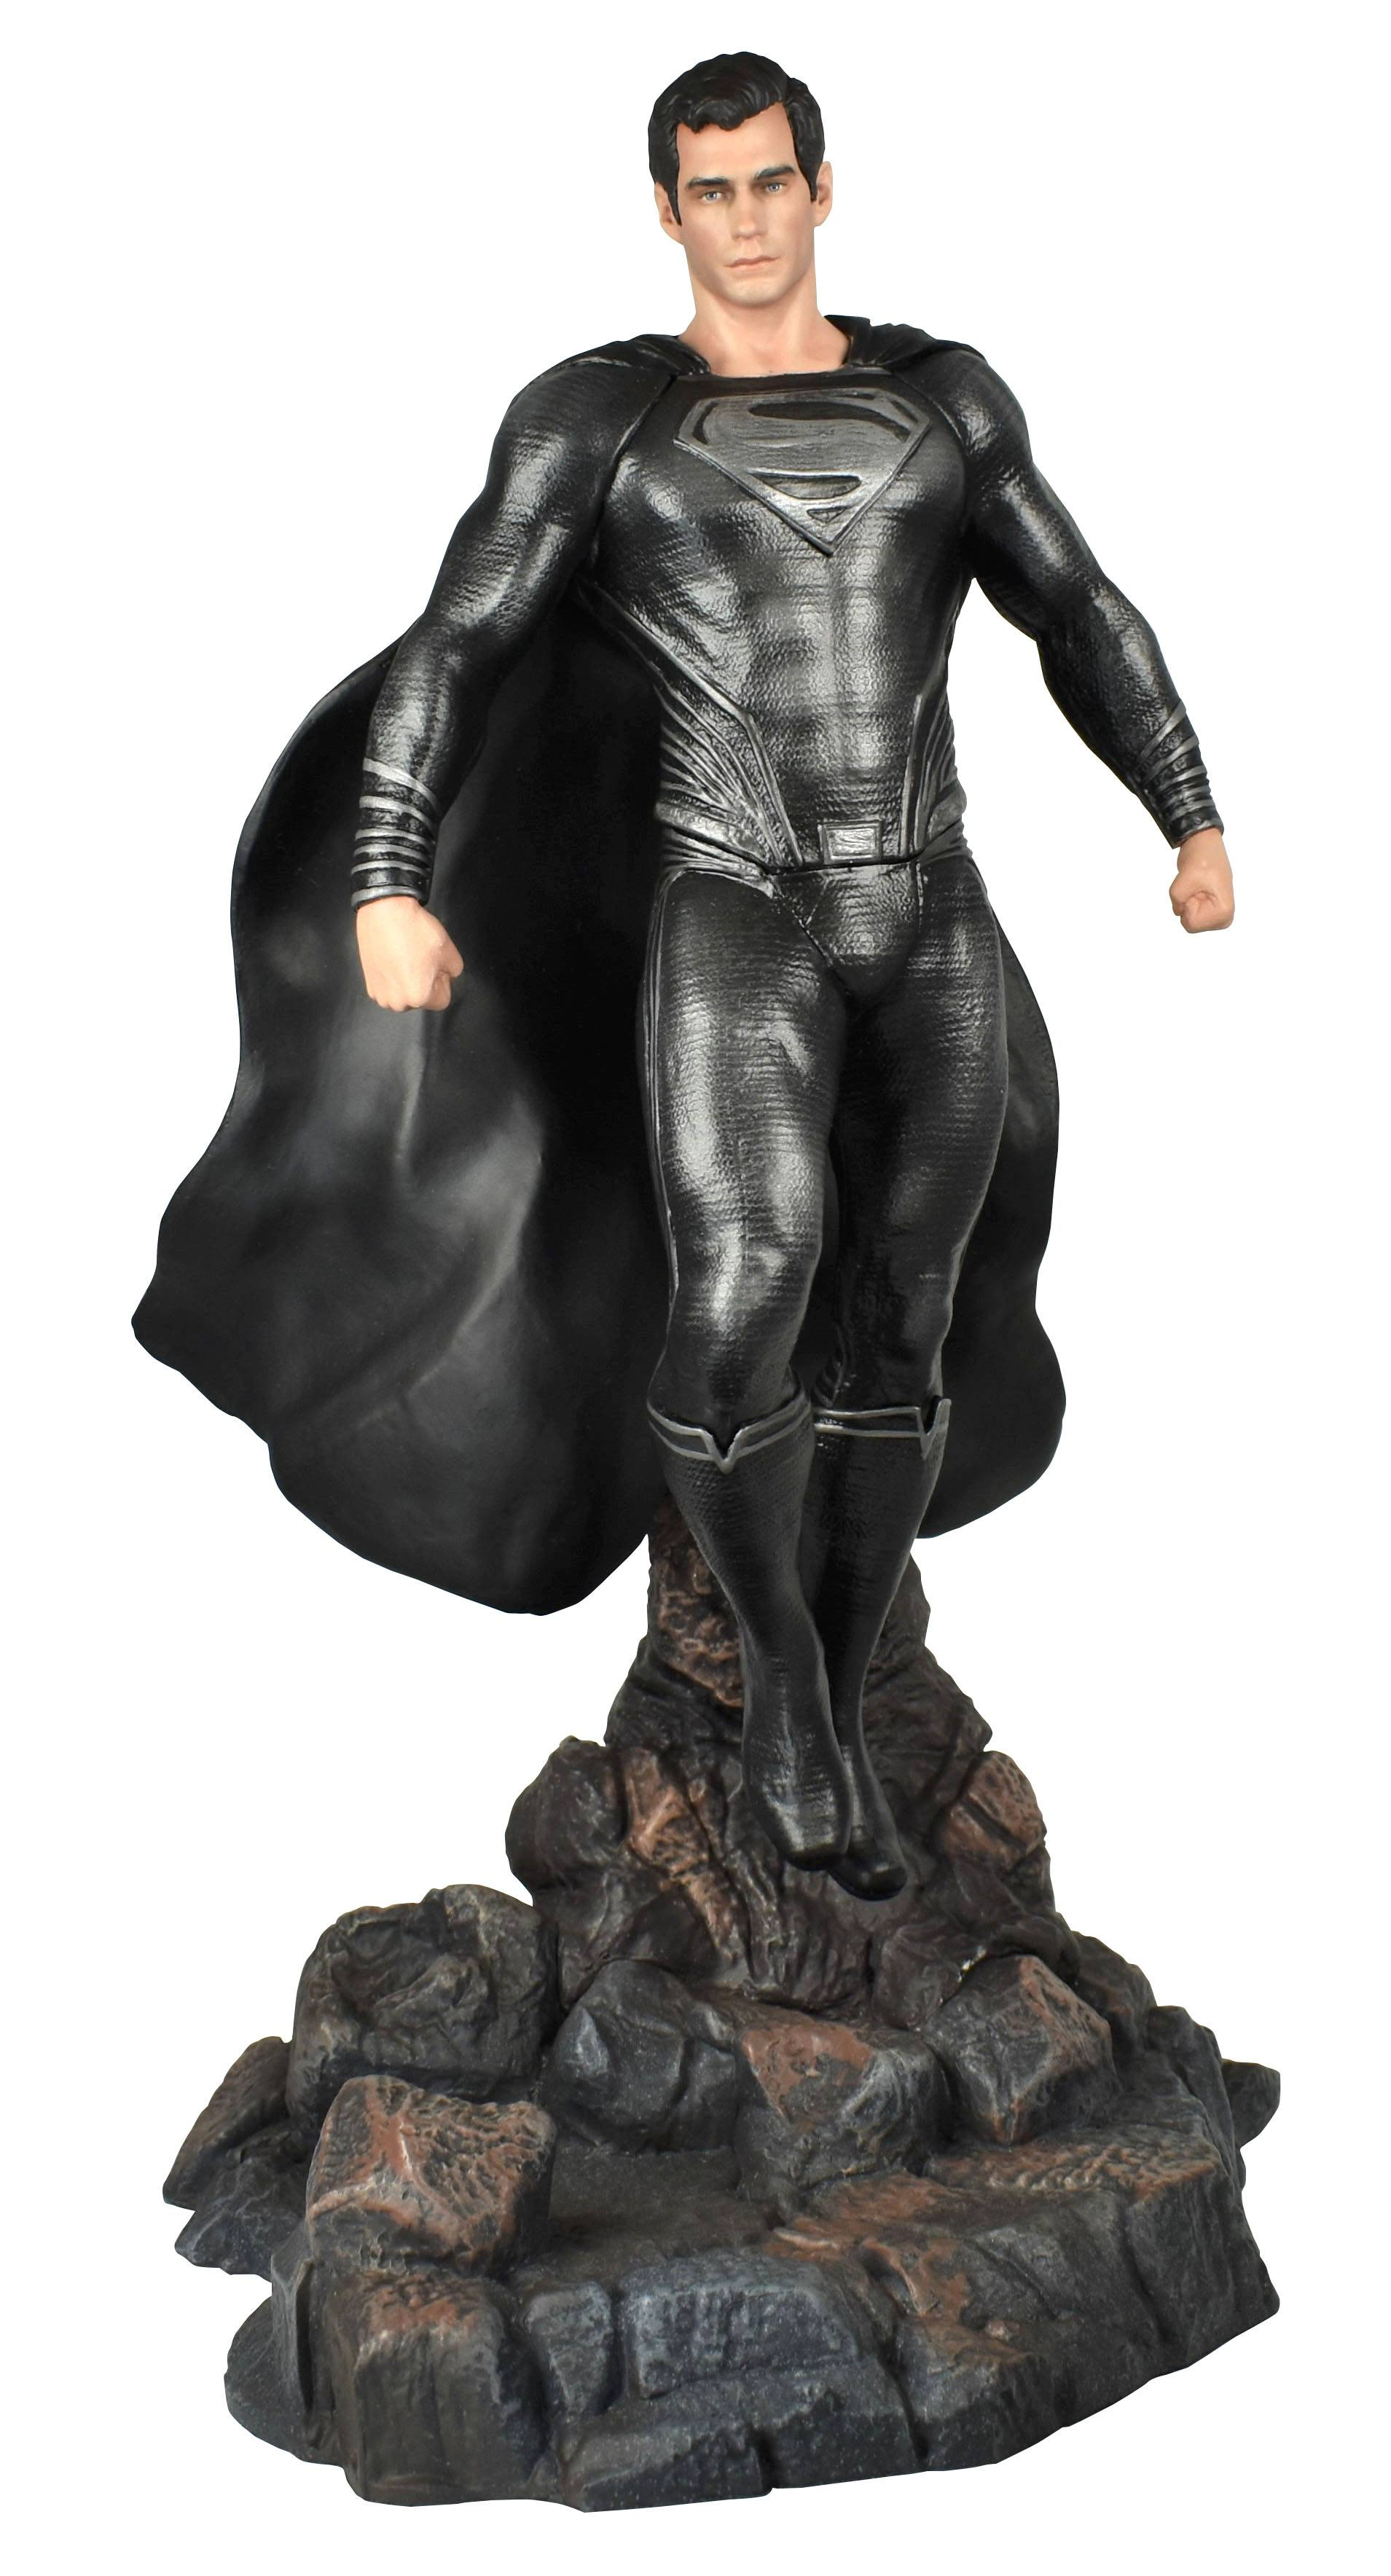 DC GALLERY MAN OF STEEL KRYPTON SUPERMAN PVC STATUE